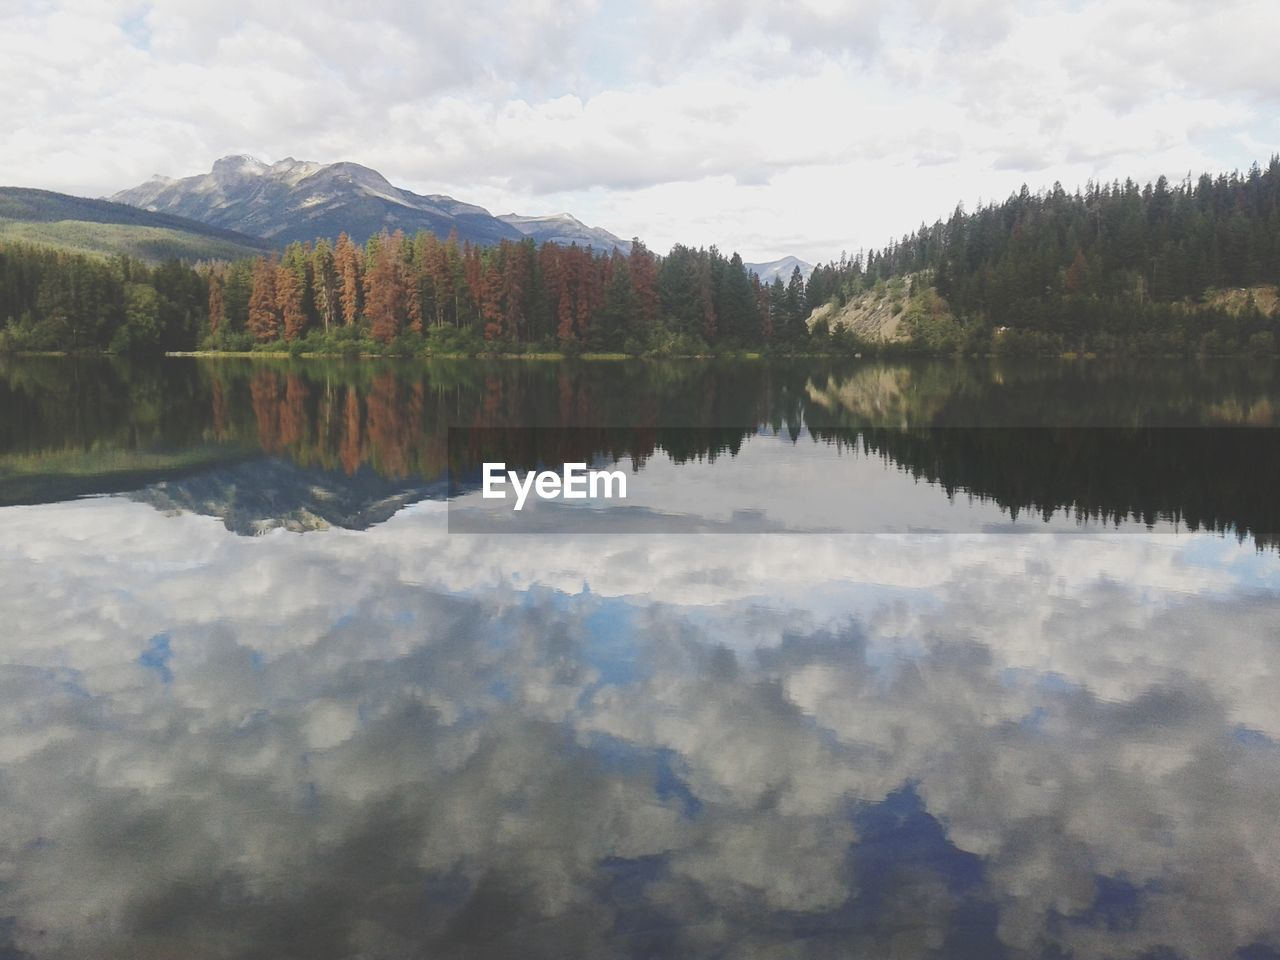 reflection, cloud - sky, water, sky, lake, tranquility, beauty in nature, tranquil scene, scenics - nature, mountain, waterfront, day, tree, nature, idyllic, non-urban scene, plant, no people, symmetry, outdoors, reflection lake